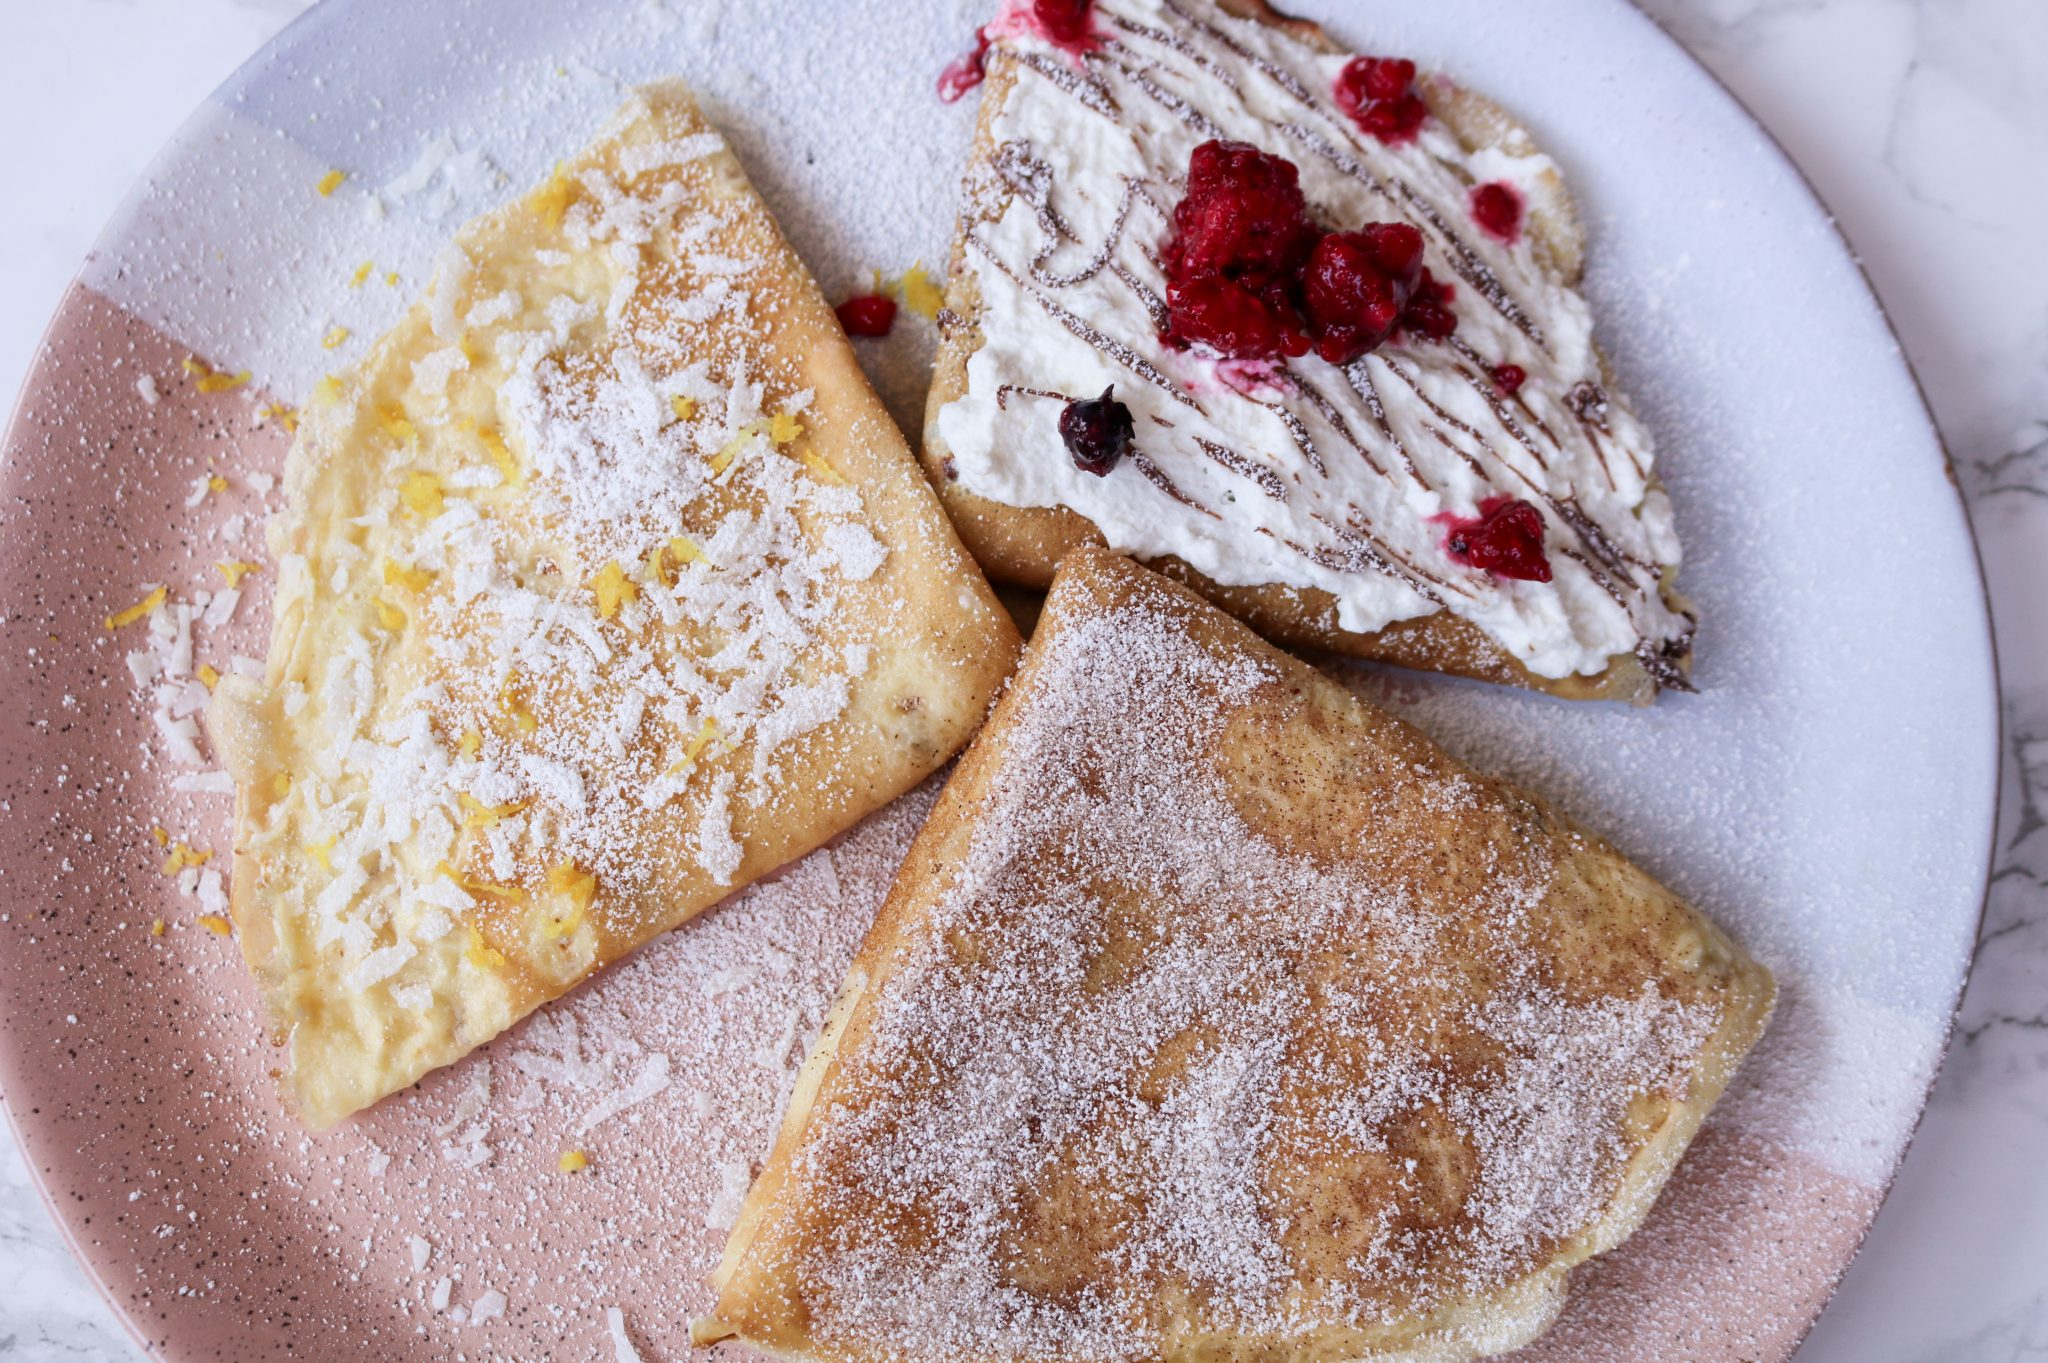 The-Hungarian-Brunette-Healthy-Crepes-Recipe-3-decadent-sweet-fillings-6-of-11.jpg